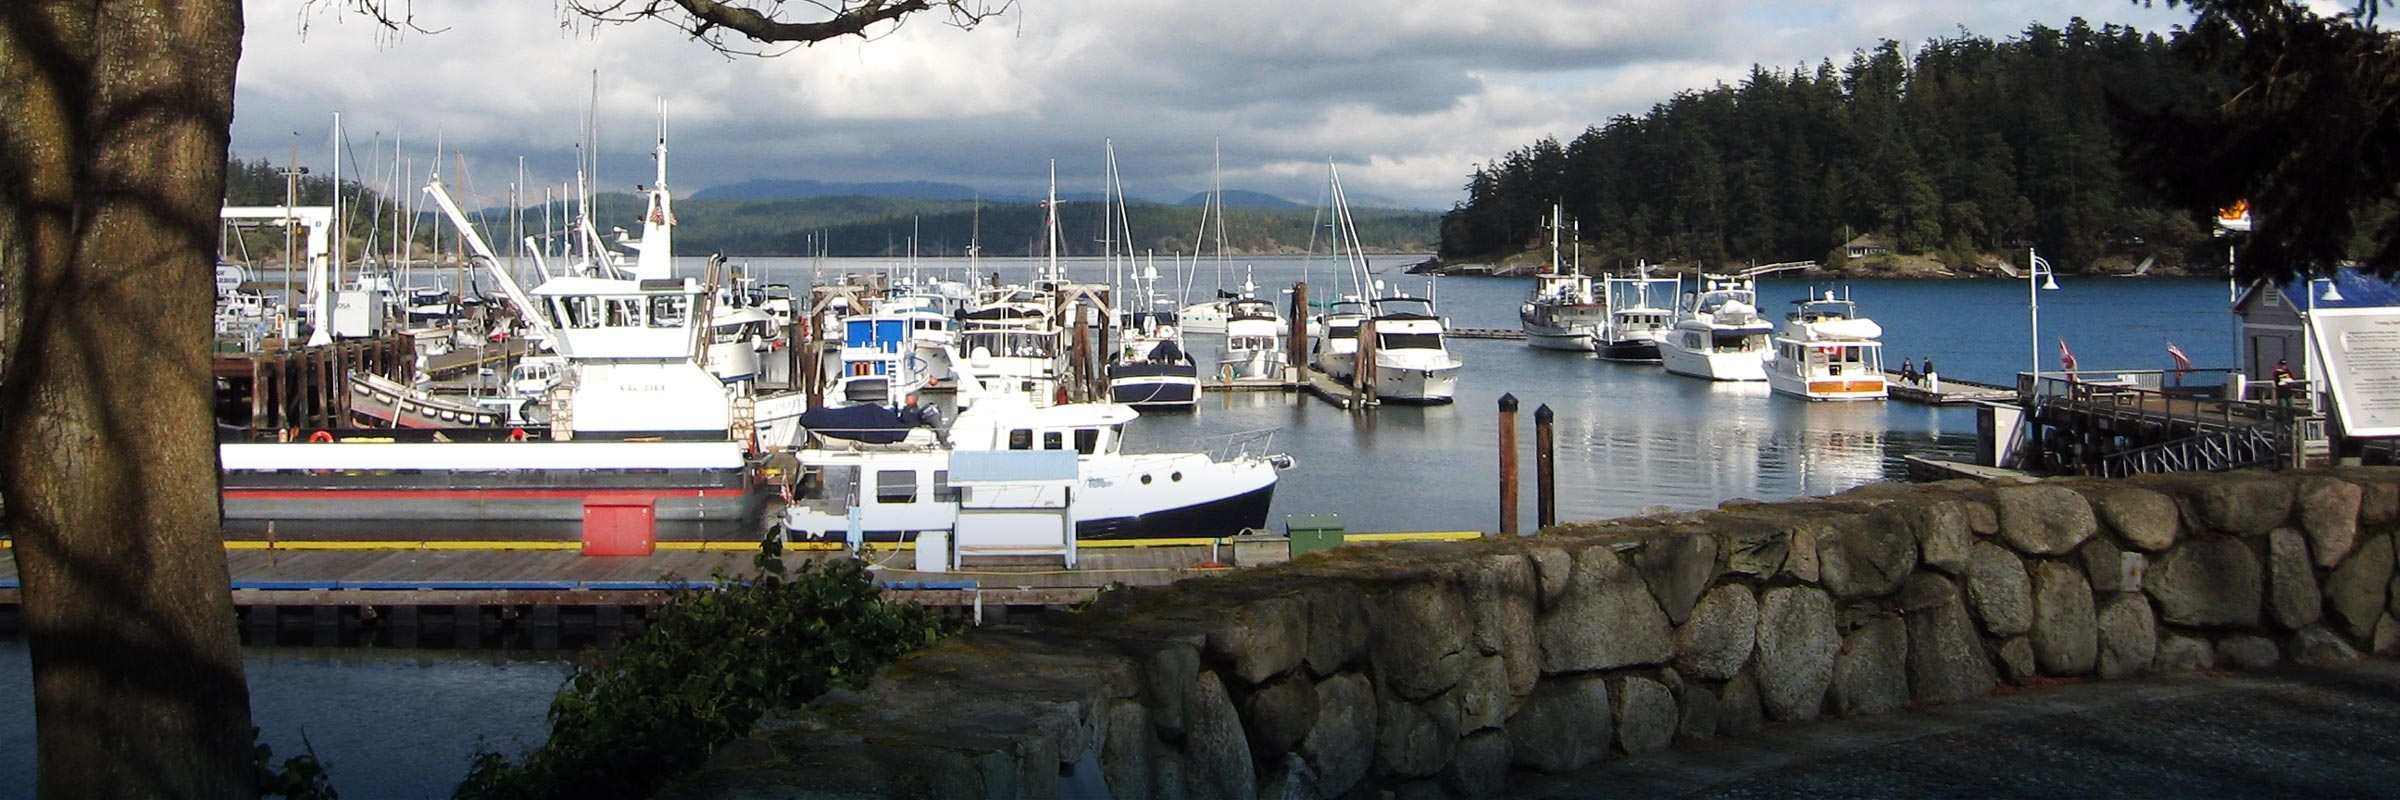 Watch whales in beautiful Friday Harbor, just outside of Seattle, WA